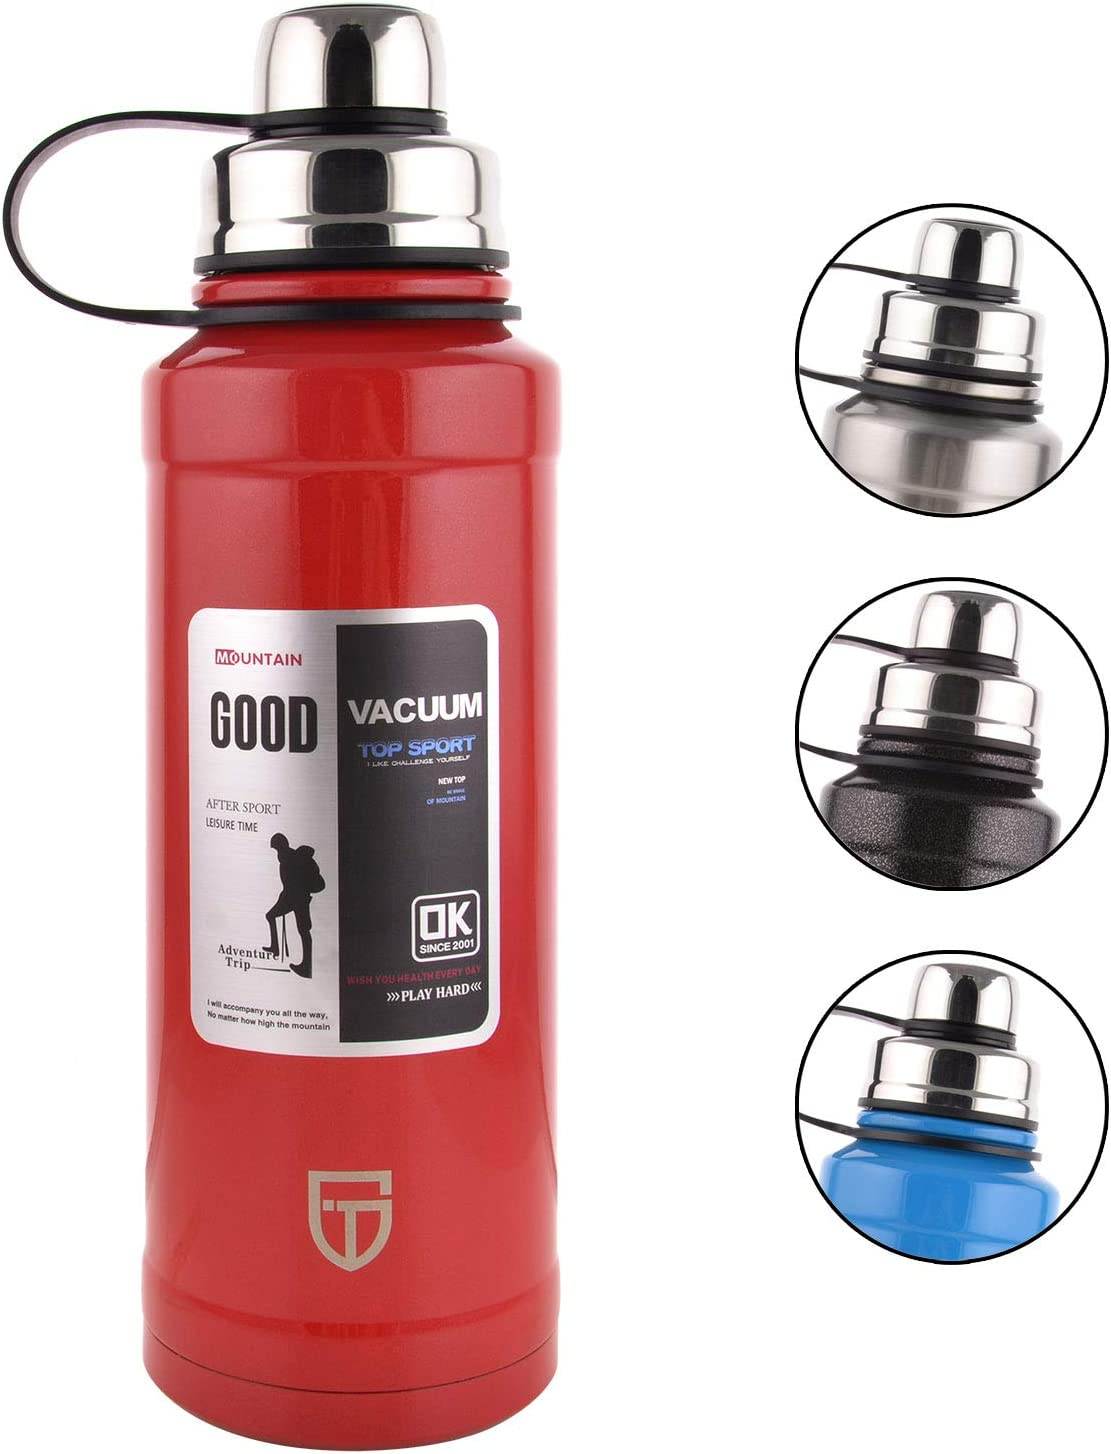 GTI Stainless Steel Vacuum Insulated Water Bottle, 28 Ounce Sports Thermos Flask with Spout Lid, Built-in Filter Thermo Mug, Keeps Hot or Cold with Double Wall Insulated Sweat Proof Design, Red.